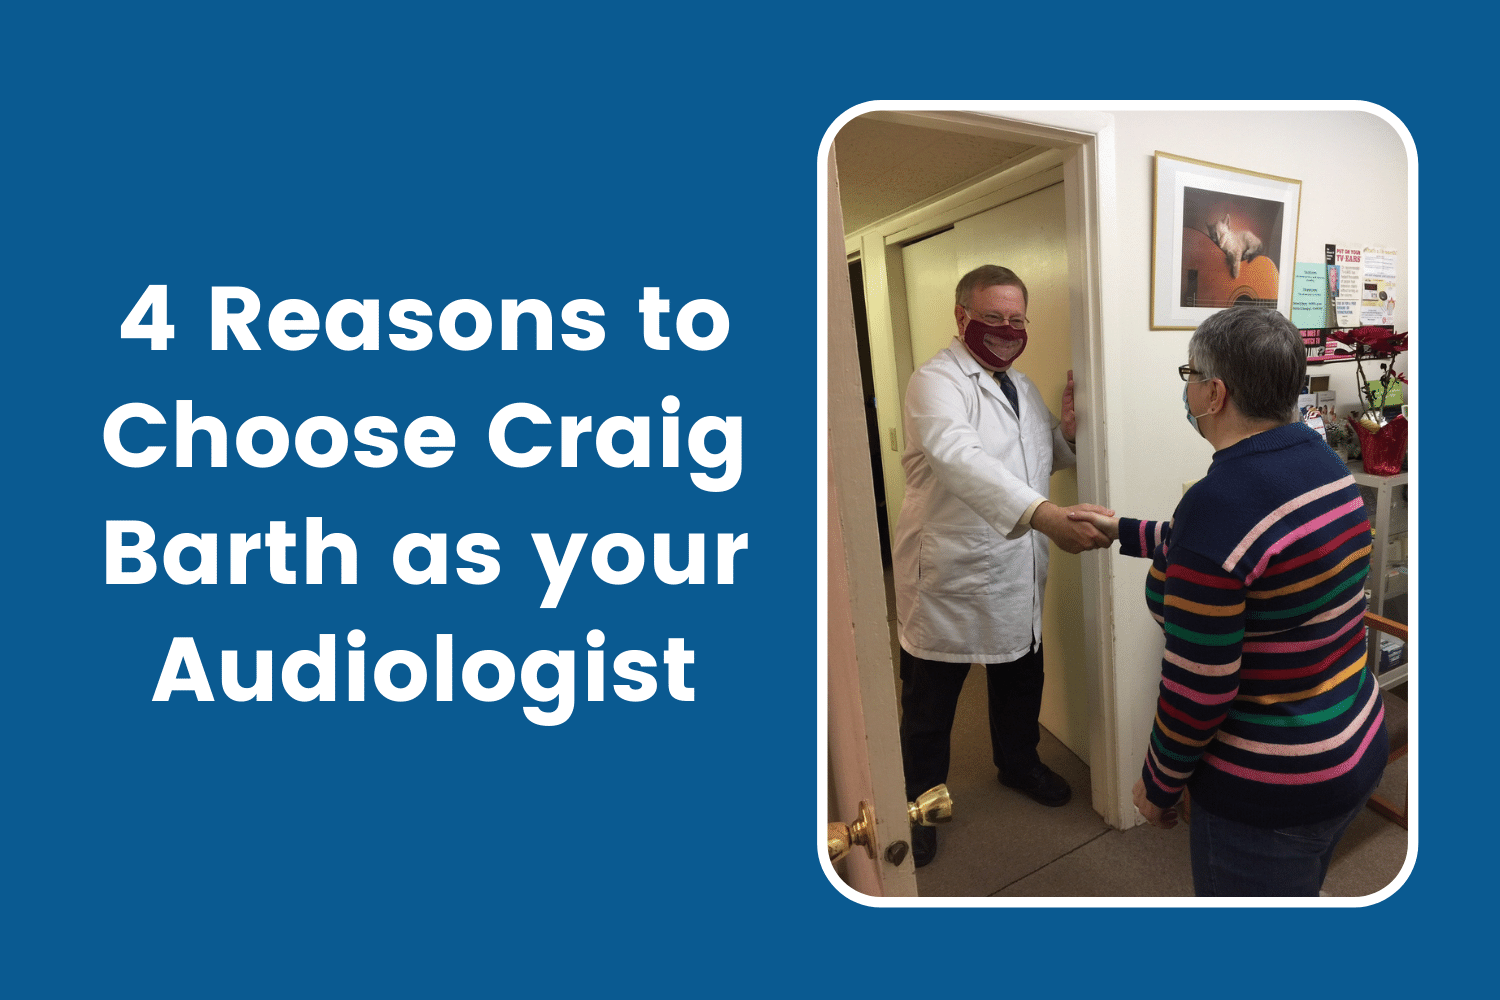 4 Reasons to See Craig Barth as your Audiologist